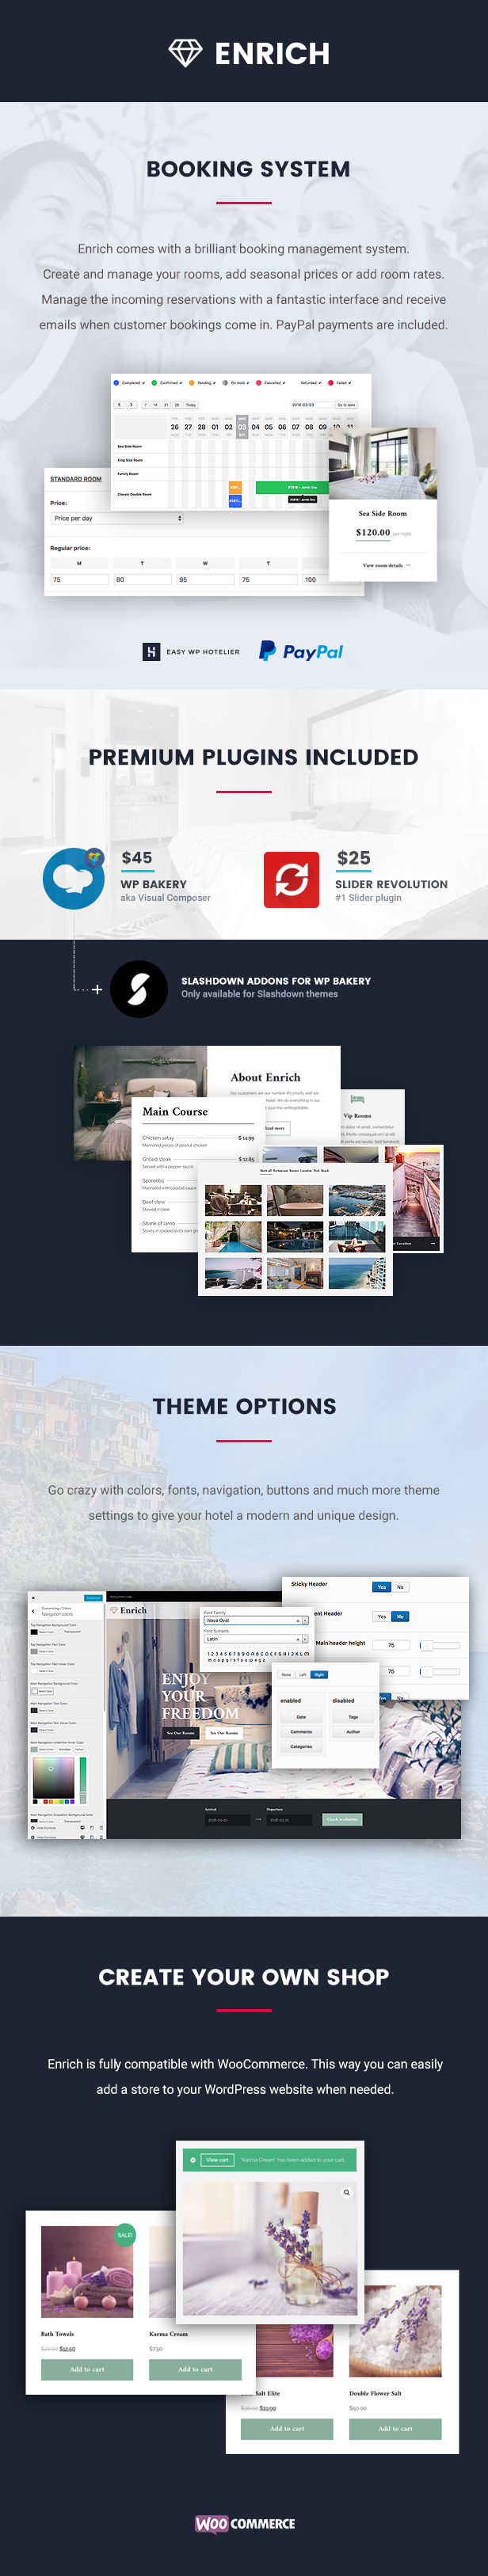 Enrich – Hotel Booking WordPress Theme